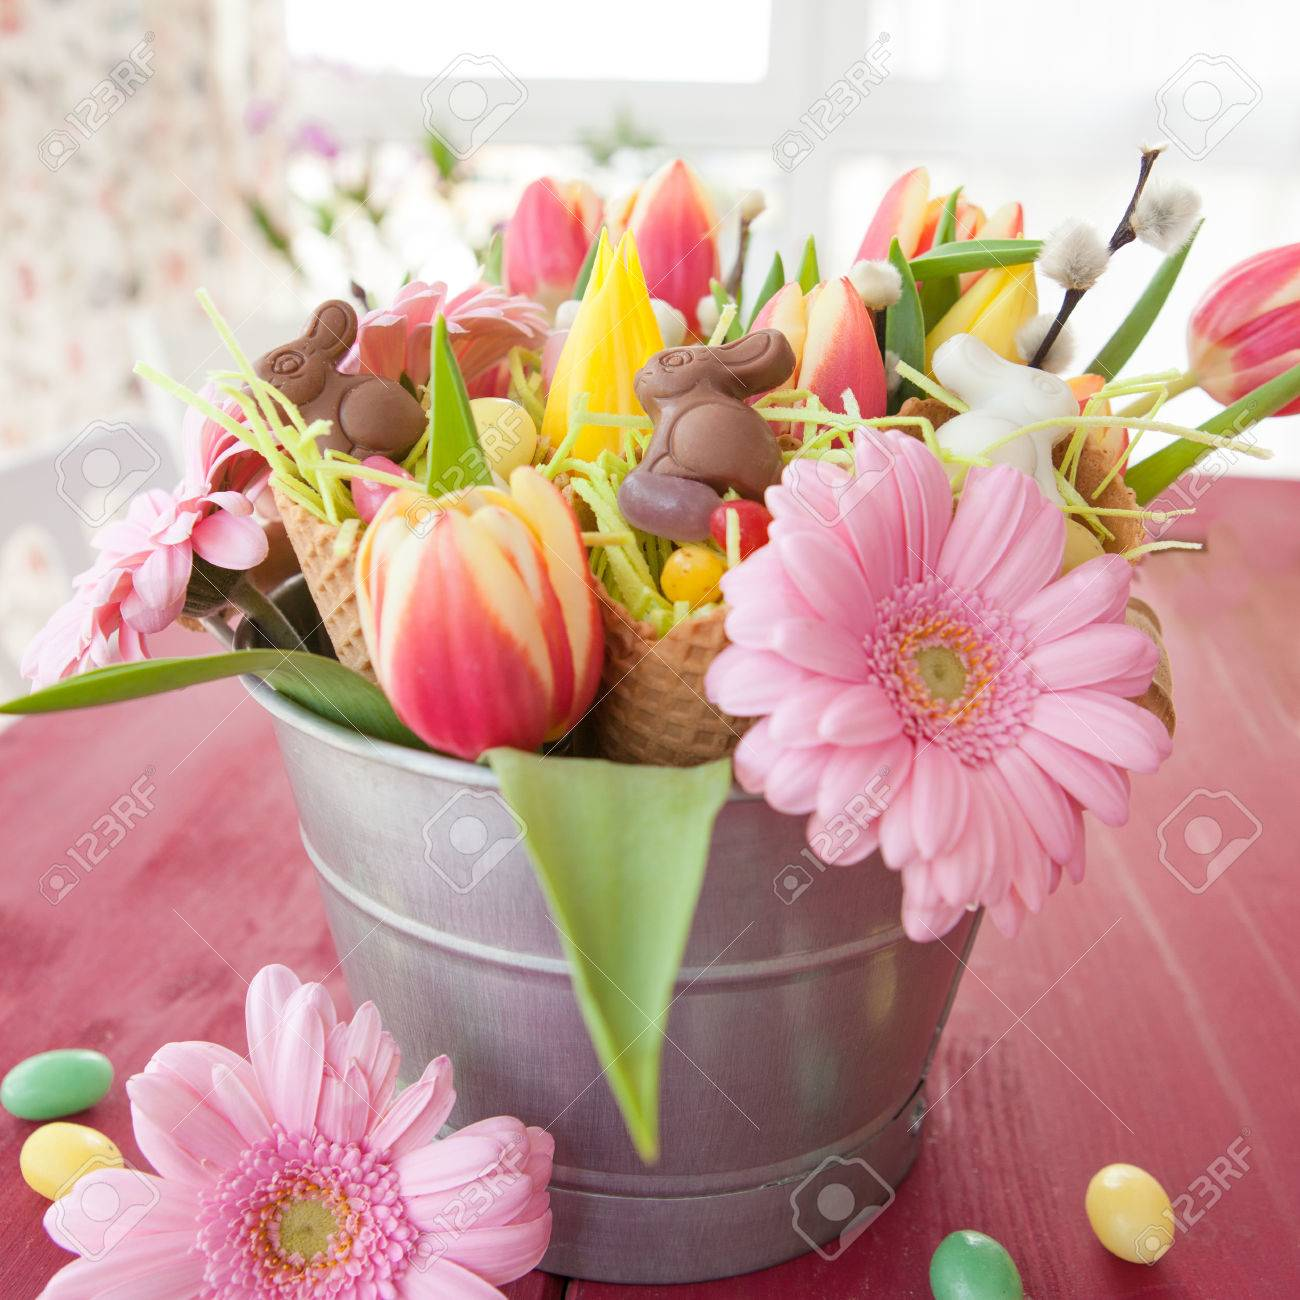 Colorful Spring Flowers With Fun Easter Candy And Chocolates Stock